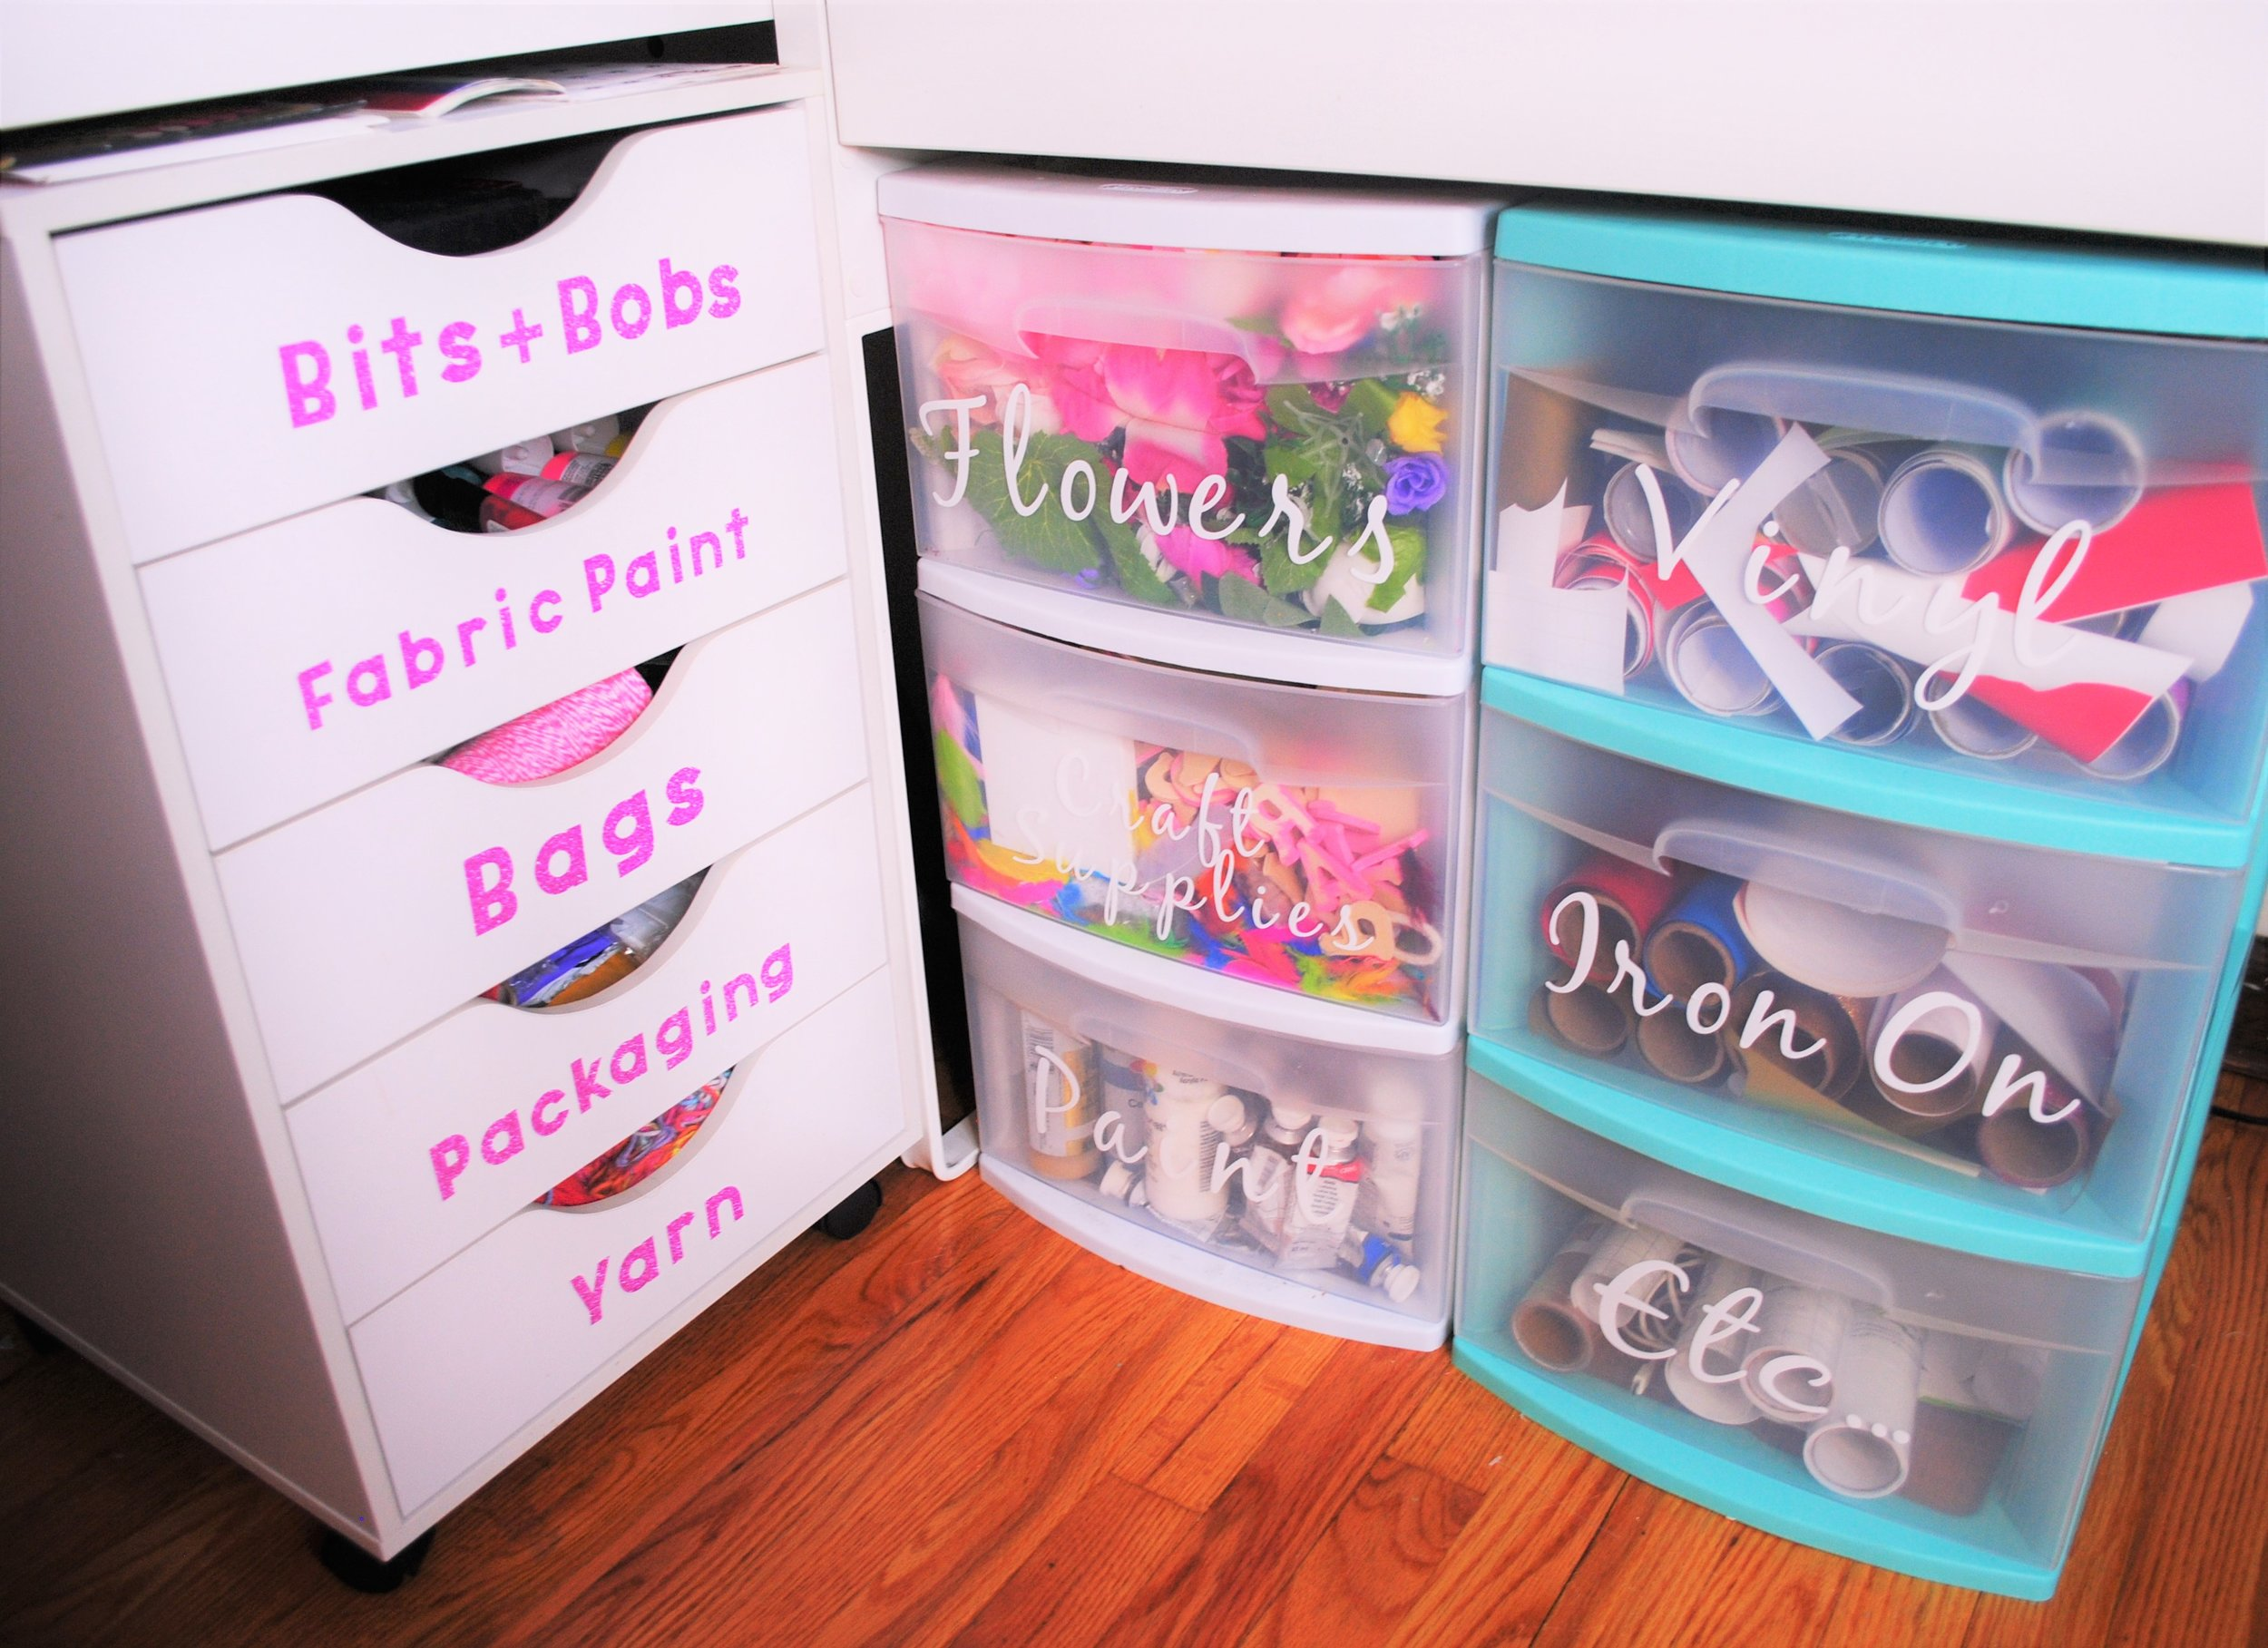 Organizing my craft drawers - I bought the white wooden drawers from Michael's craft store and the plastic ones from Walmart, and I used my cricut (can you tell how much I love this thing yet?!) to make the colorful labels for all of the drawers.